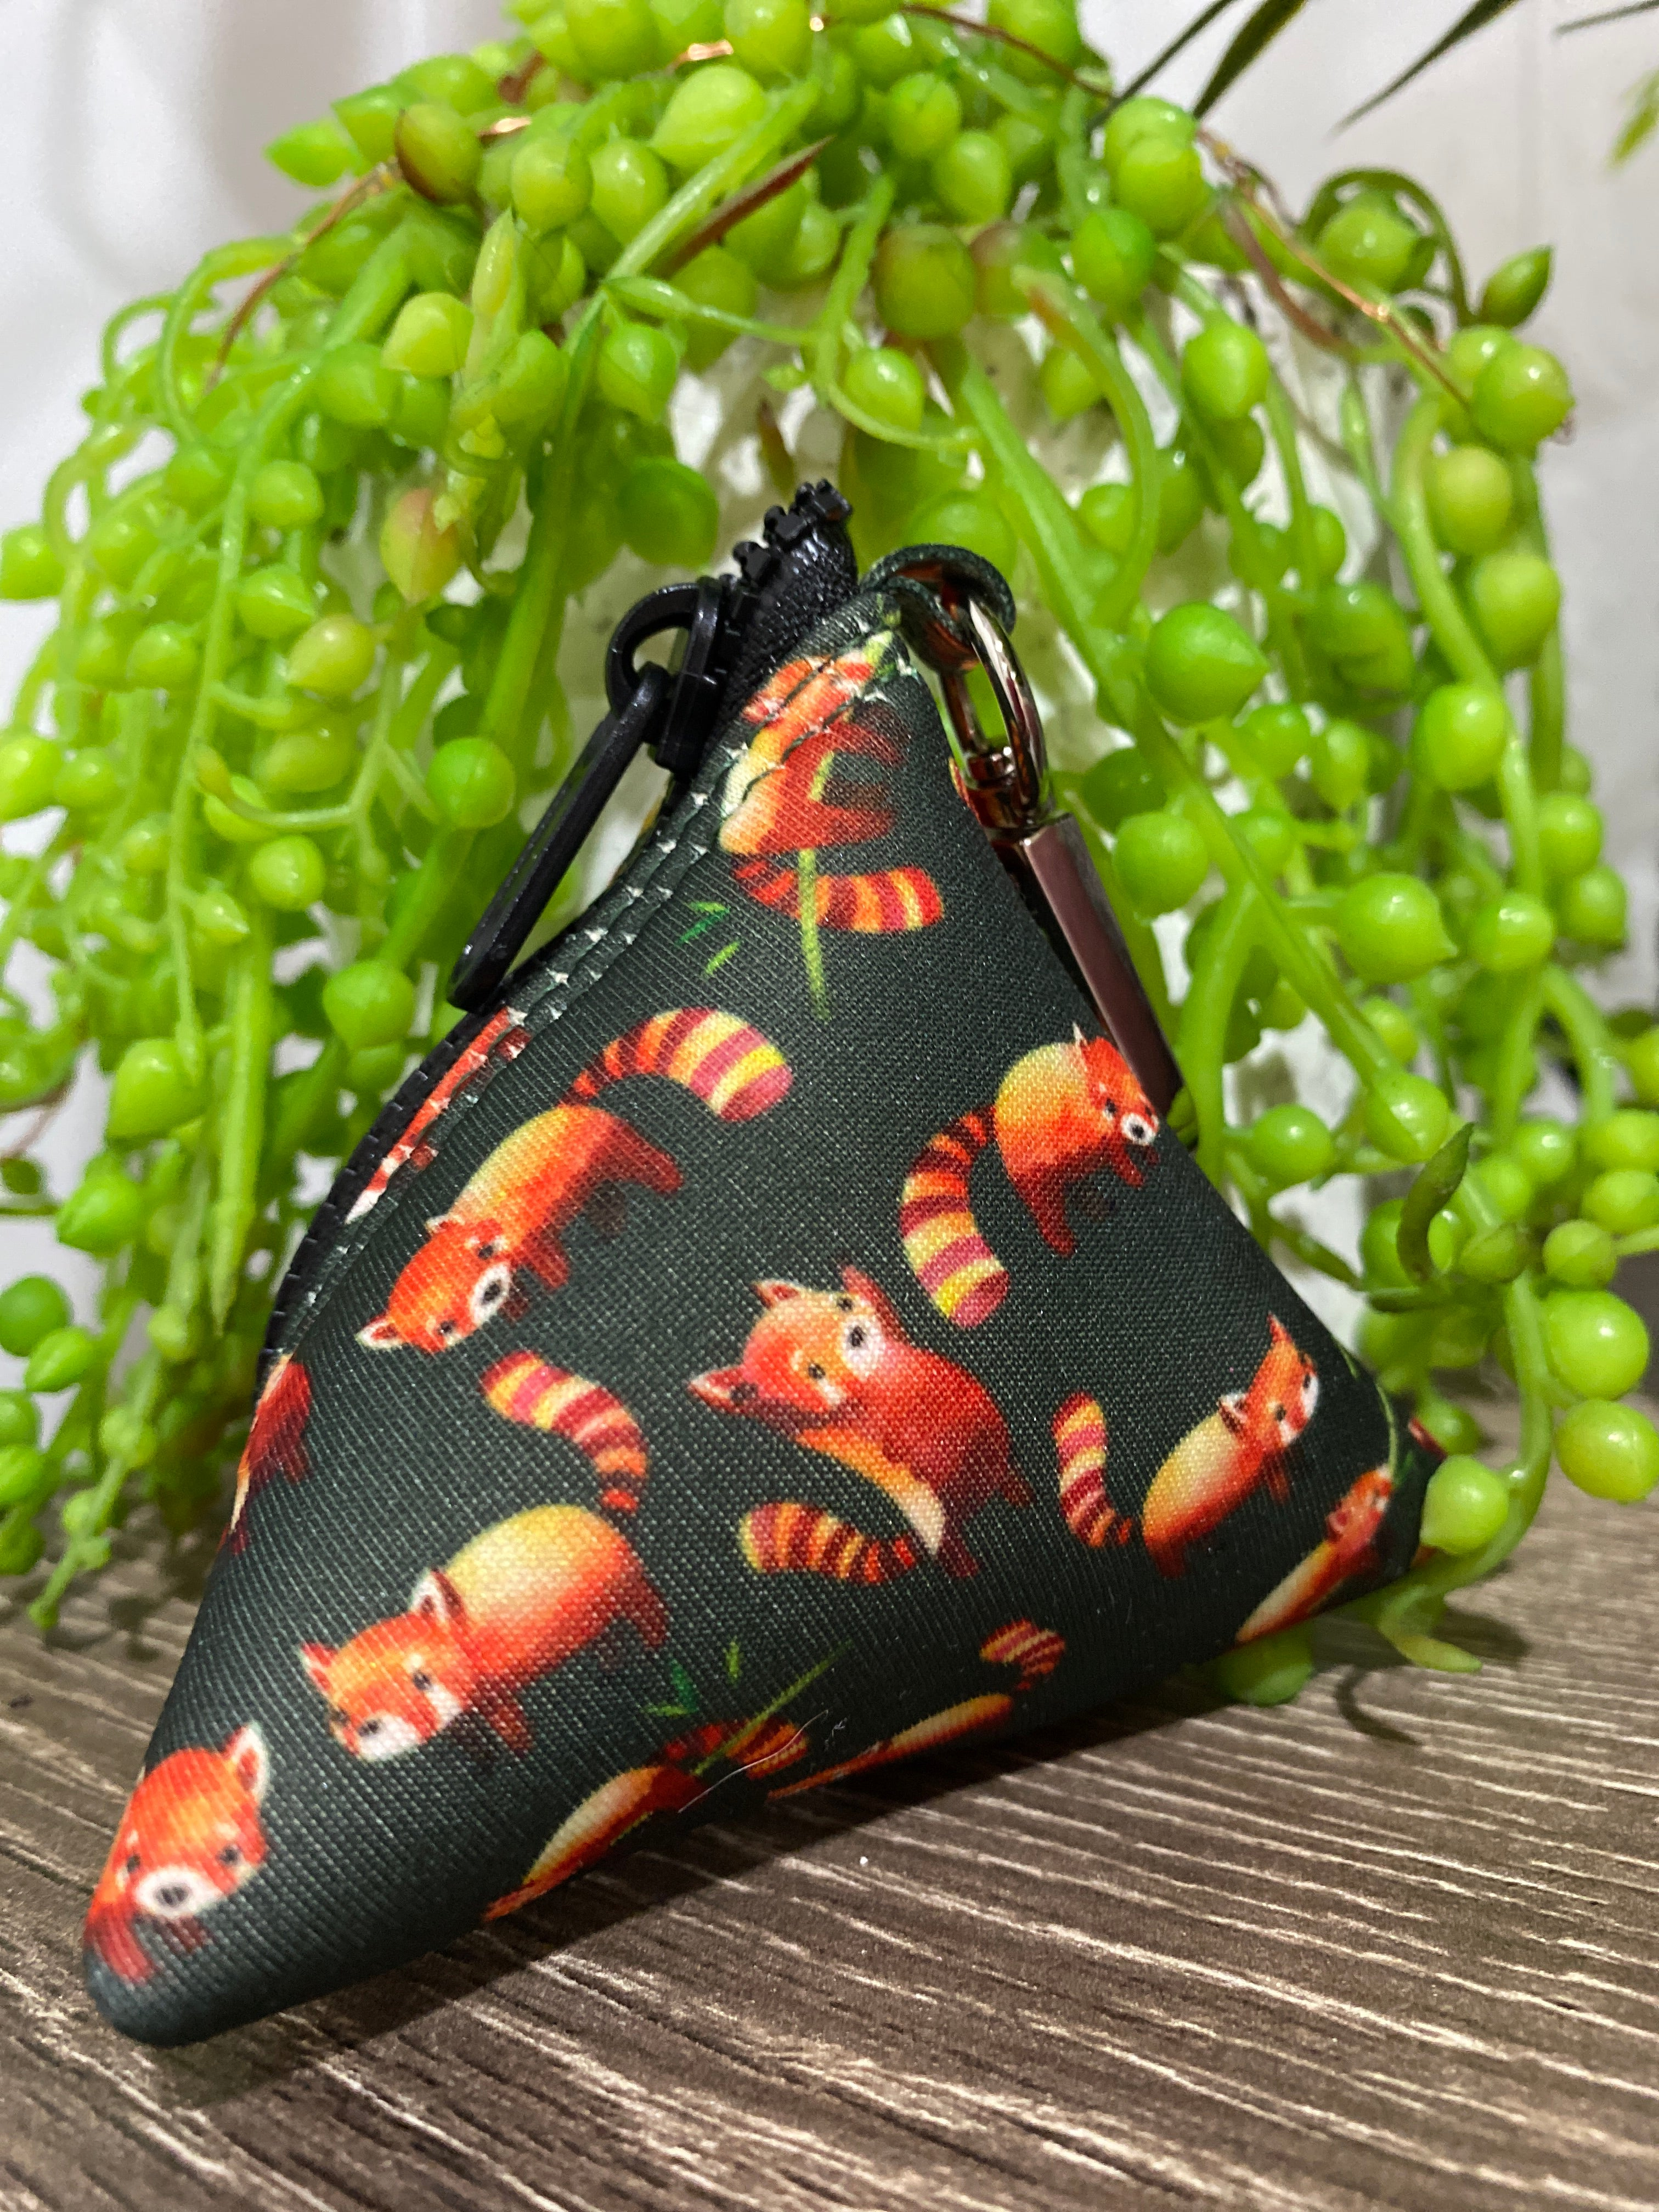 Red Panda Pocket- For Poop Bags, Treat and/or Keys/Coins-Dizzy Dog Collars